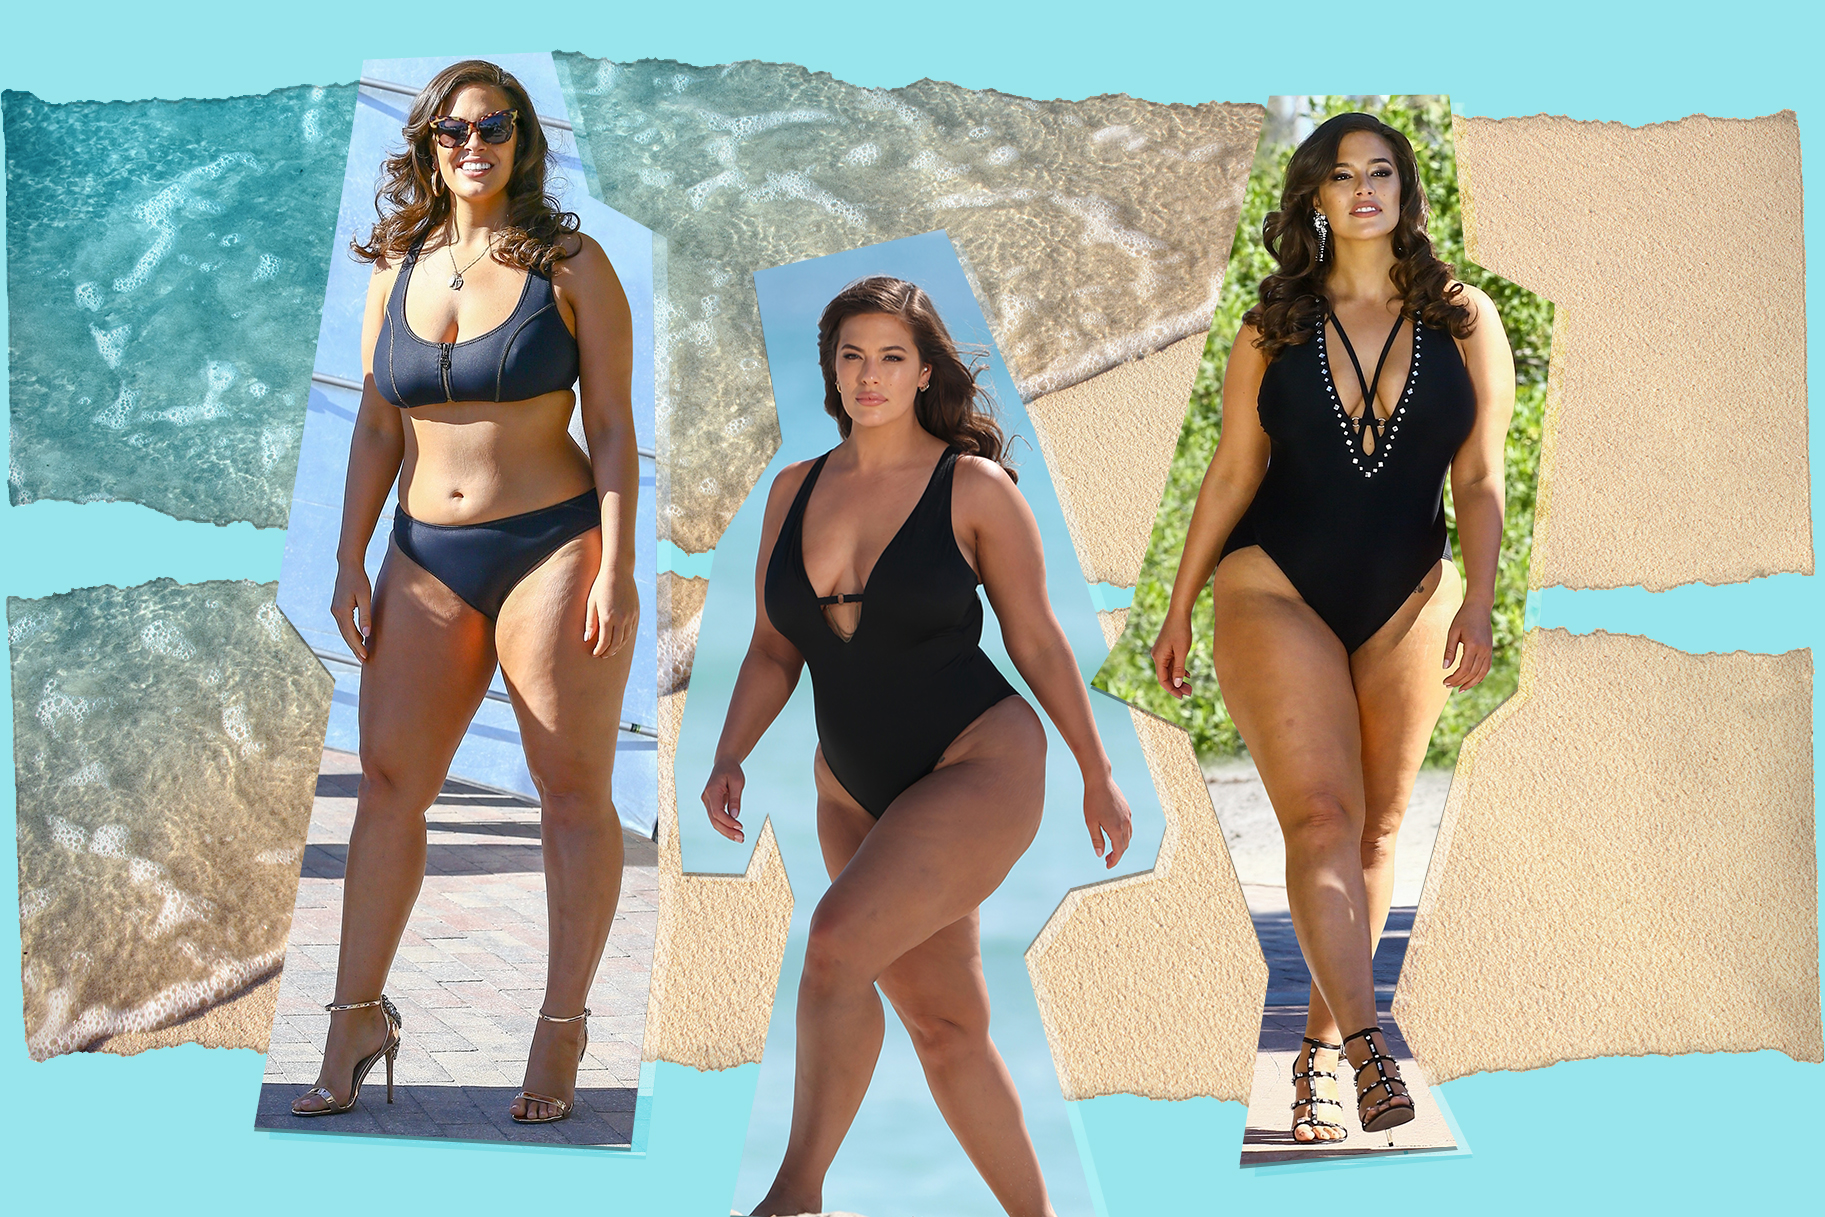 bd8a4ae9255f5 Ashley Graham Used Unretouched Bikini Photos in Her Stunning New Swimsuit  Campaign